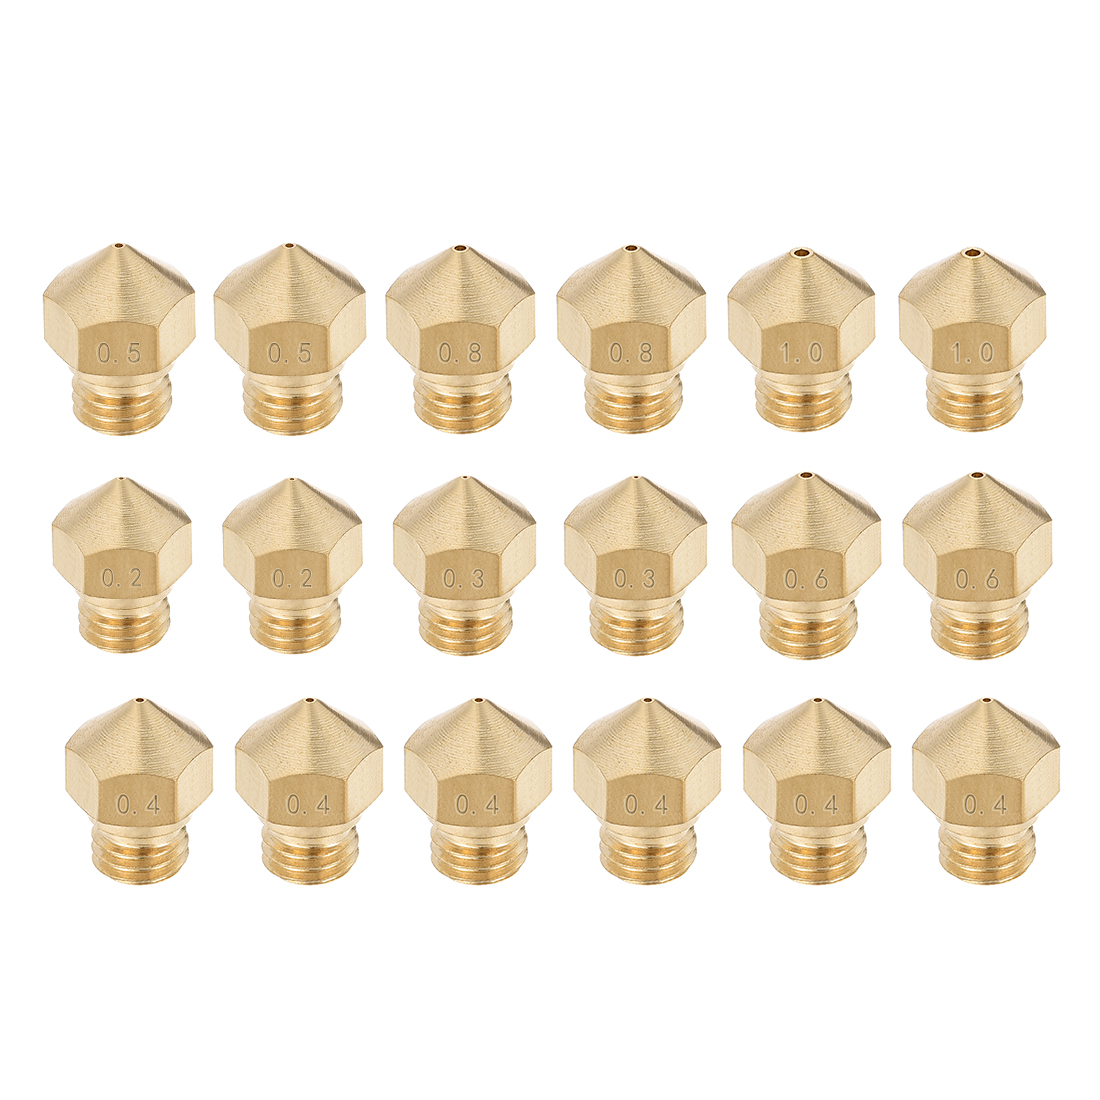 3D Printer Nozzle Fit for MK10,for 1.75mm Filament Brass,0.2mm - 1mm Total 18pcs